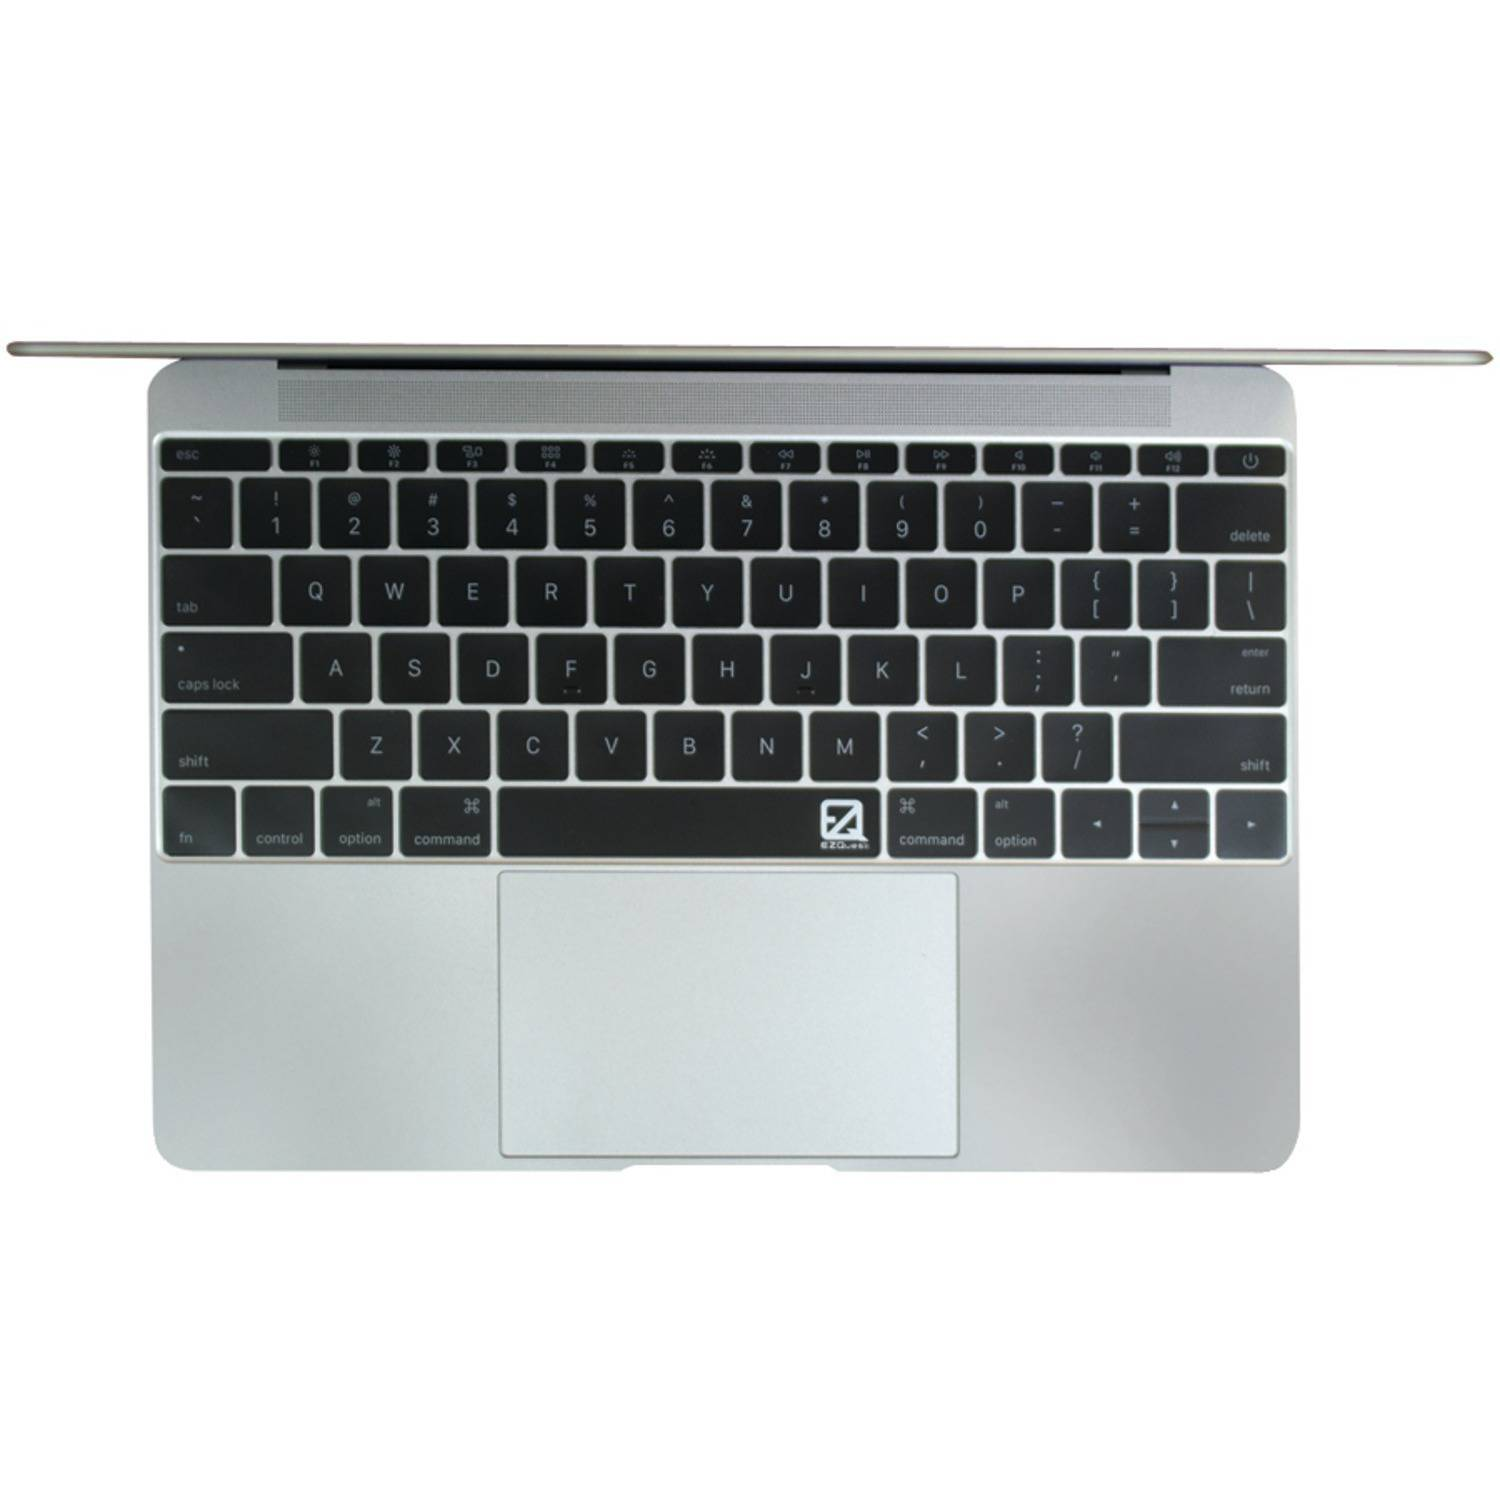 "EZQuest X22301 12"" MacBook Pro US/ISO Invisible Keyboard Cover"